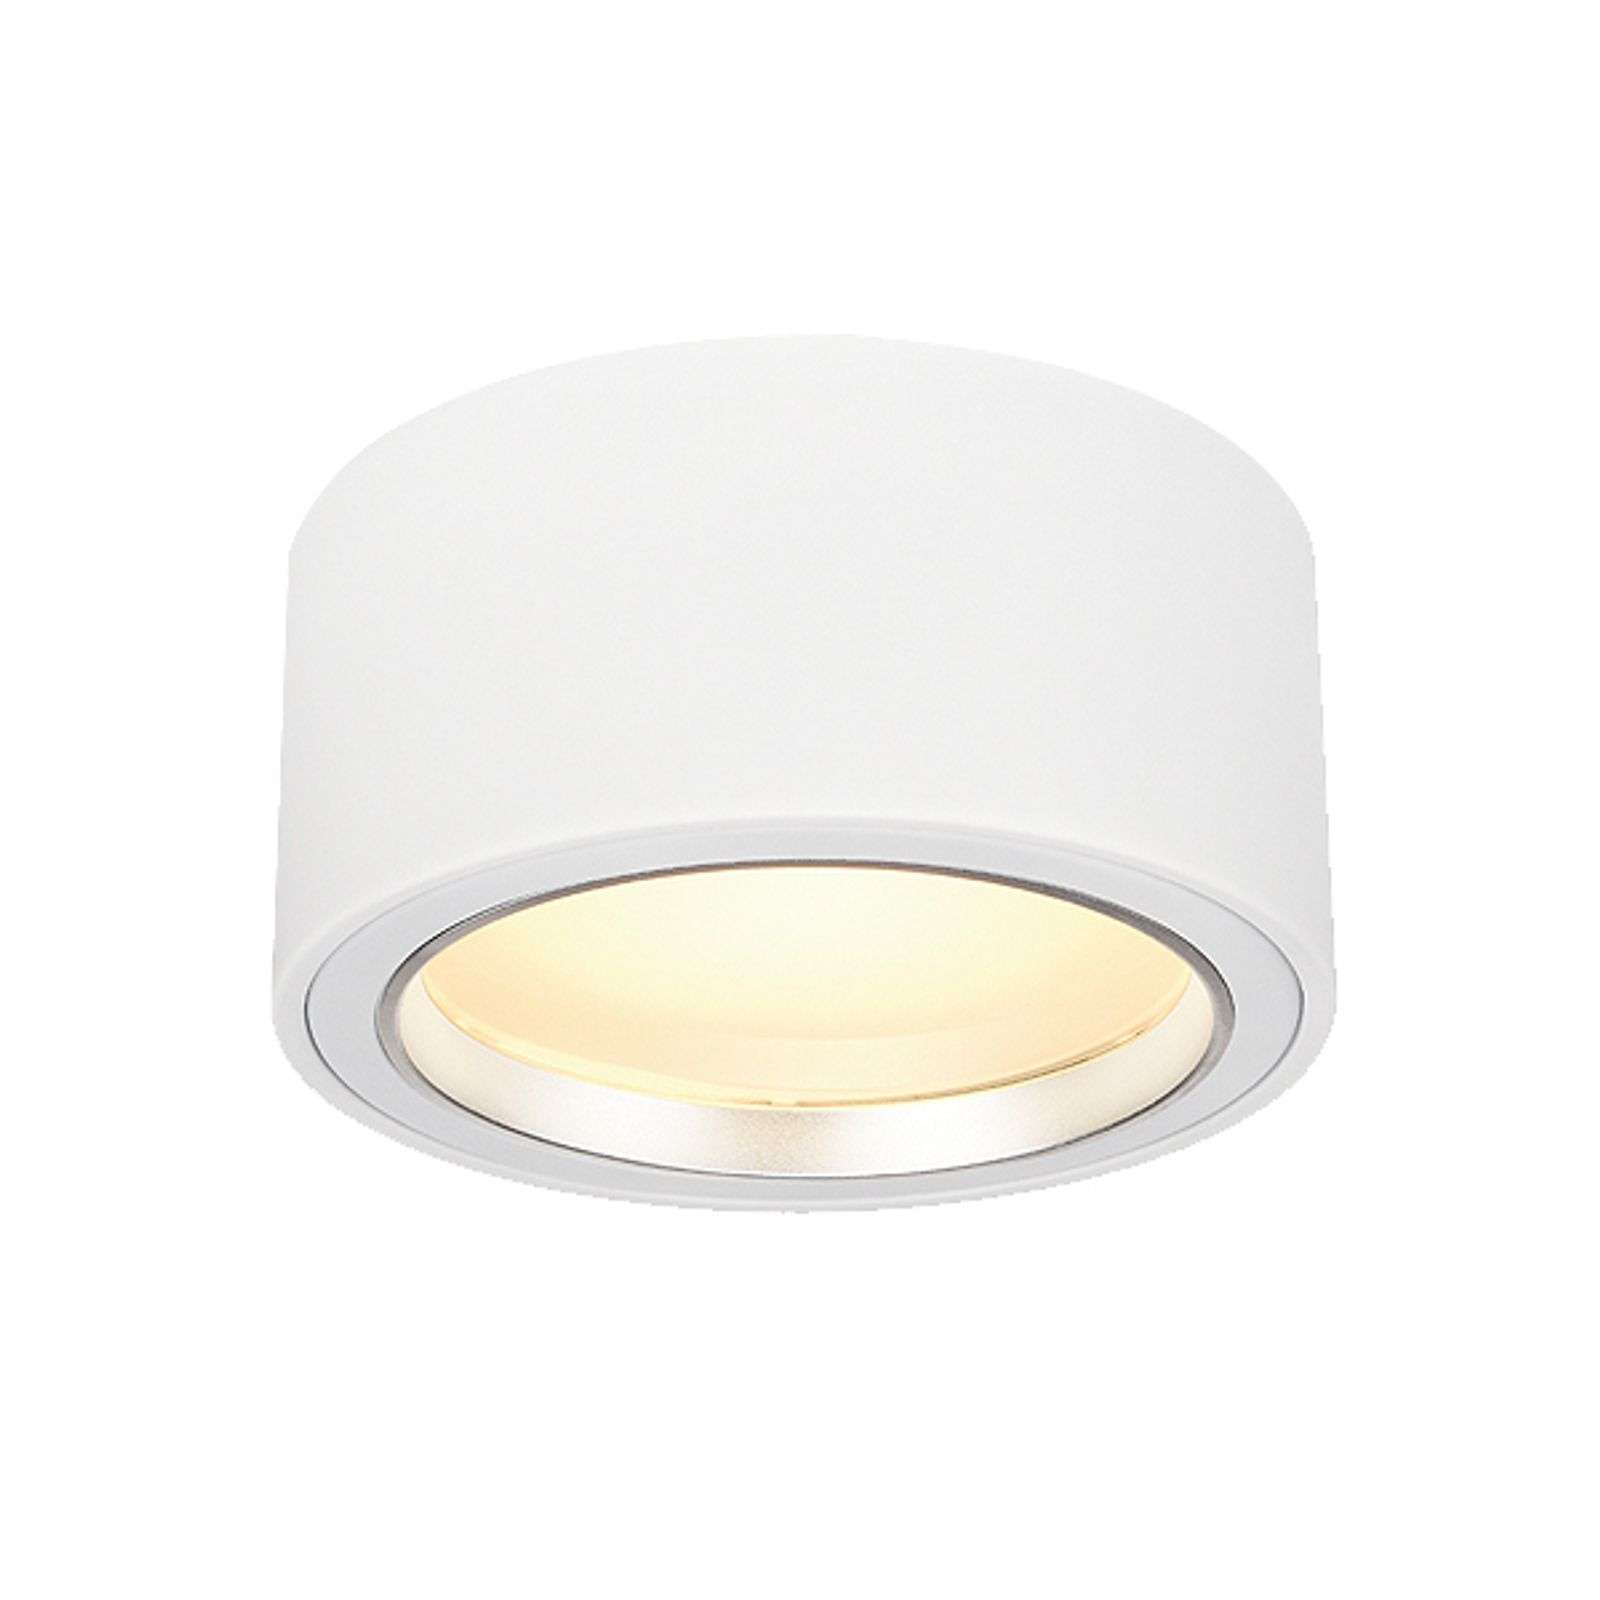 SLV Fera 25 LED opbouw downlight 3.000K